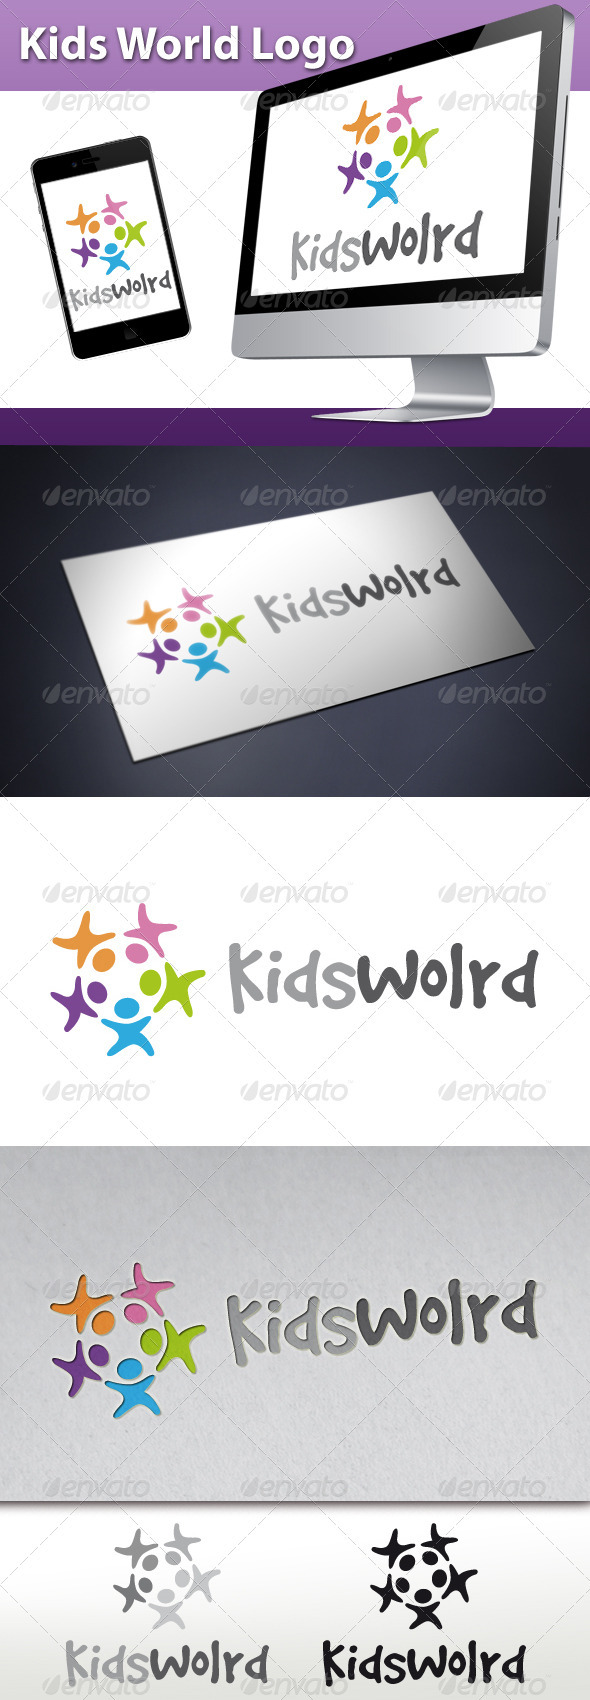 GraphicRiver Kids World Logo 3269106